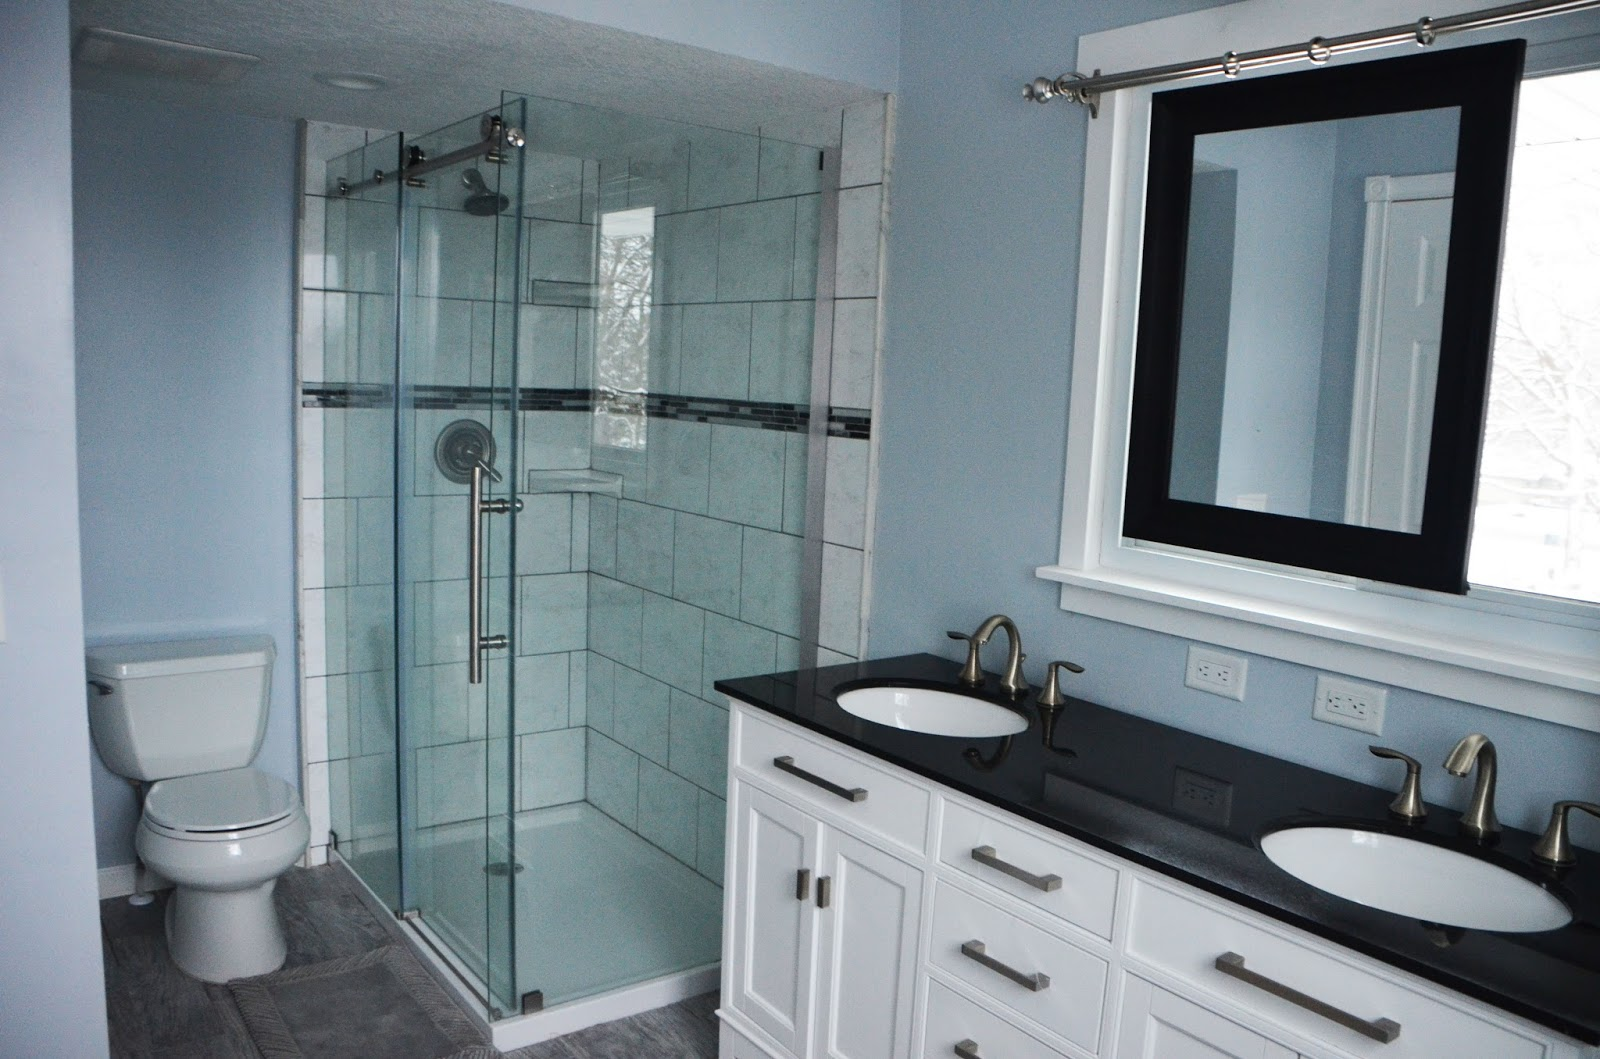 Bathroom Renovation With Sliding Mirror Over Window, By Since I Became A  Mom Featured On